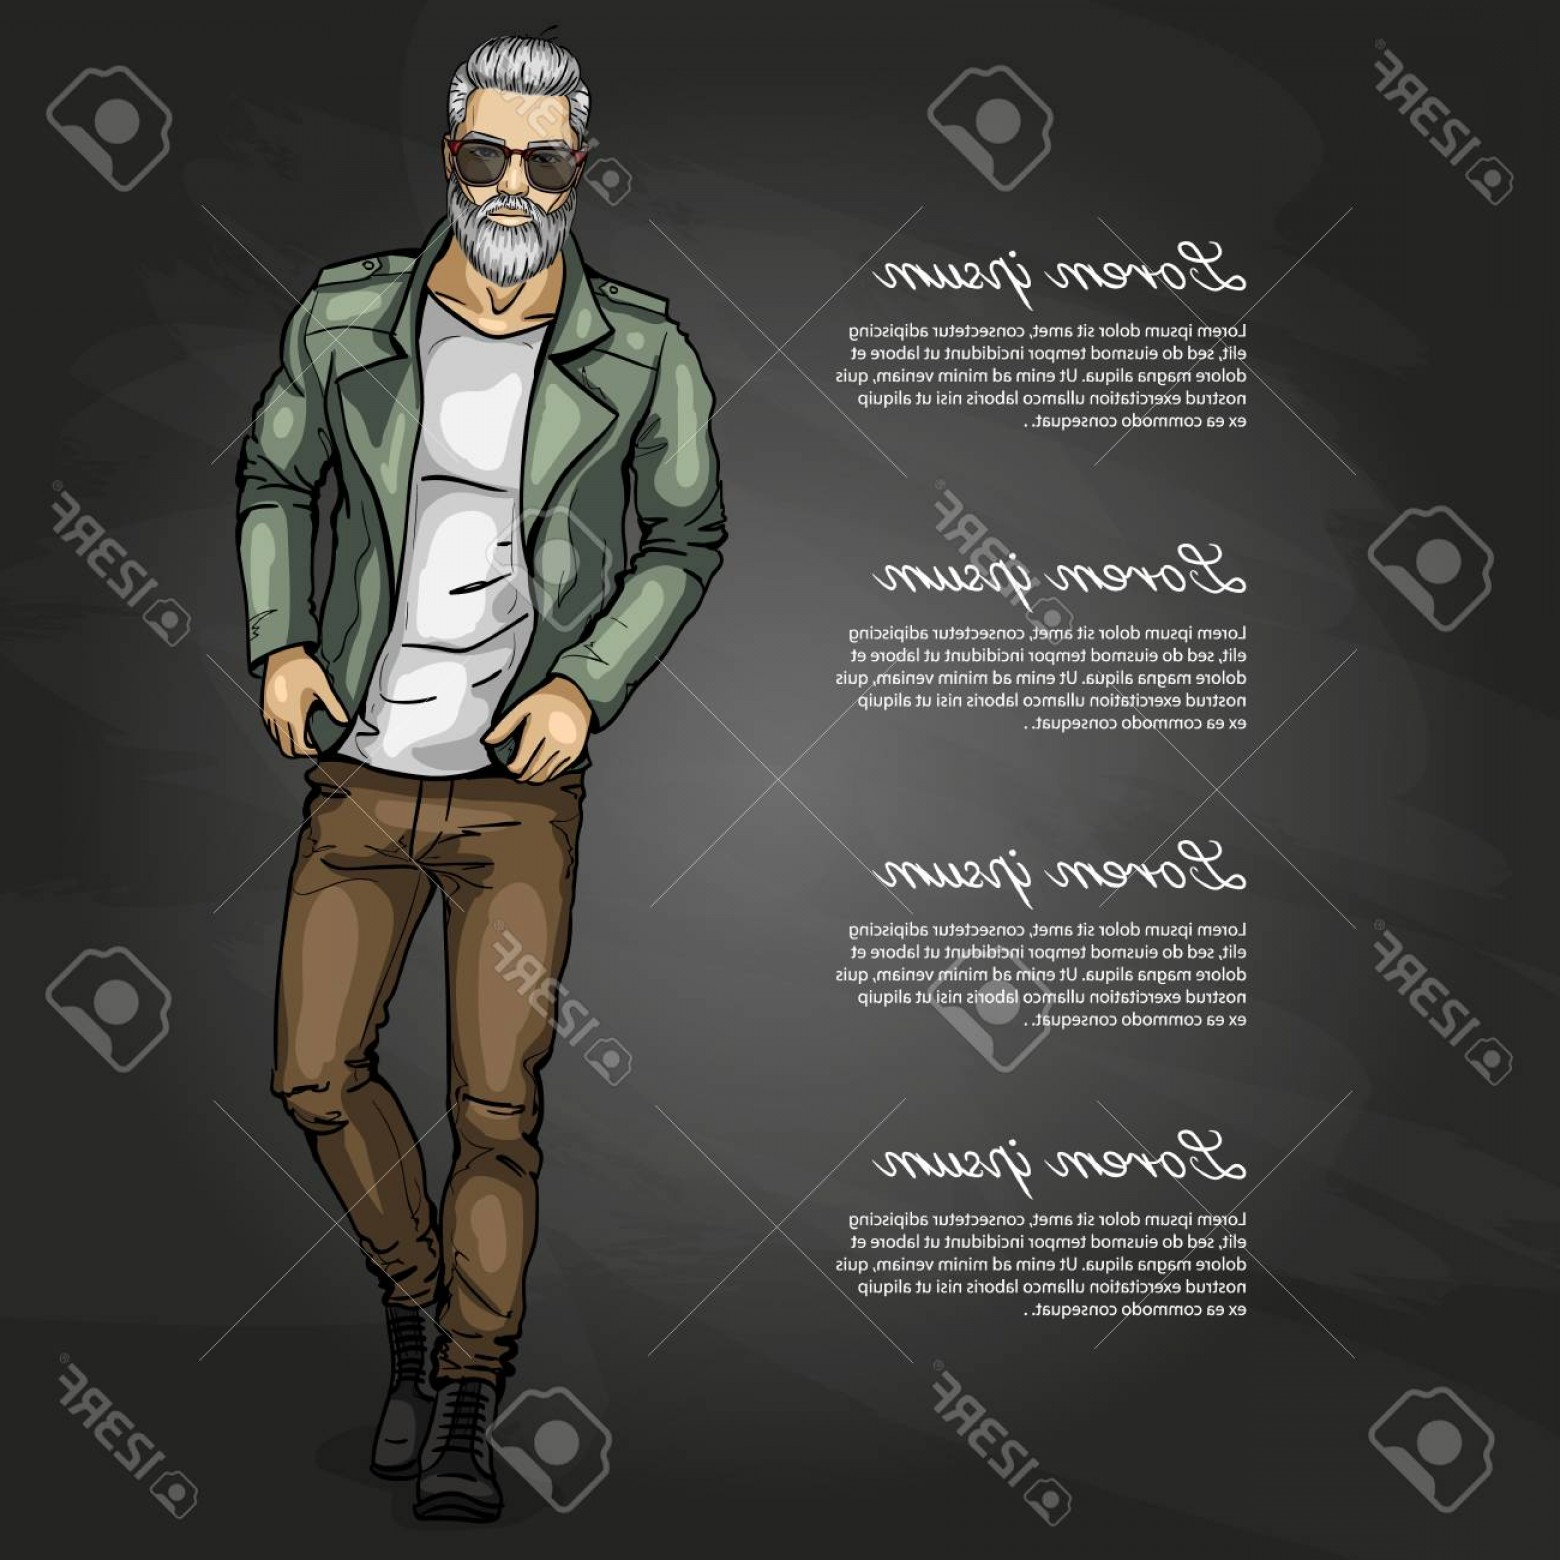 Vectorman Darkness: Photostock Vector Vector Man Model Dressed In Jeans Lather Jacket Shoes And T Shirt On Dark Background